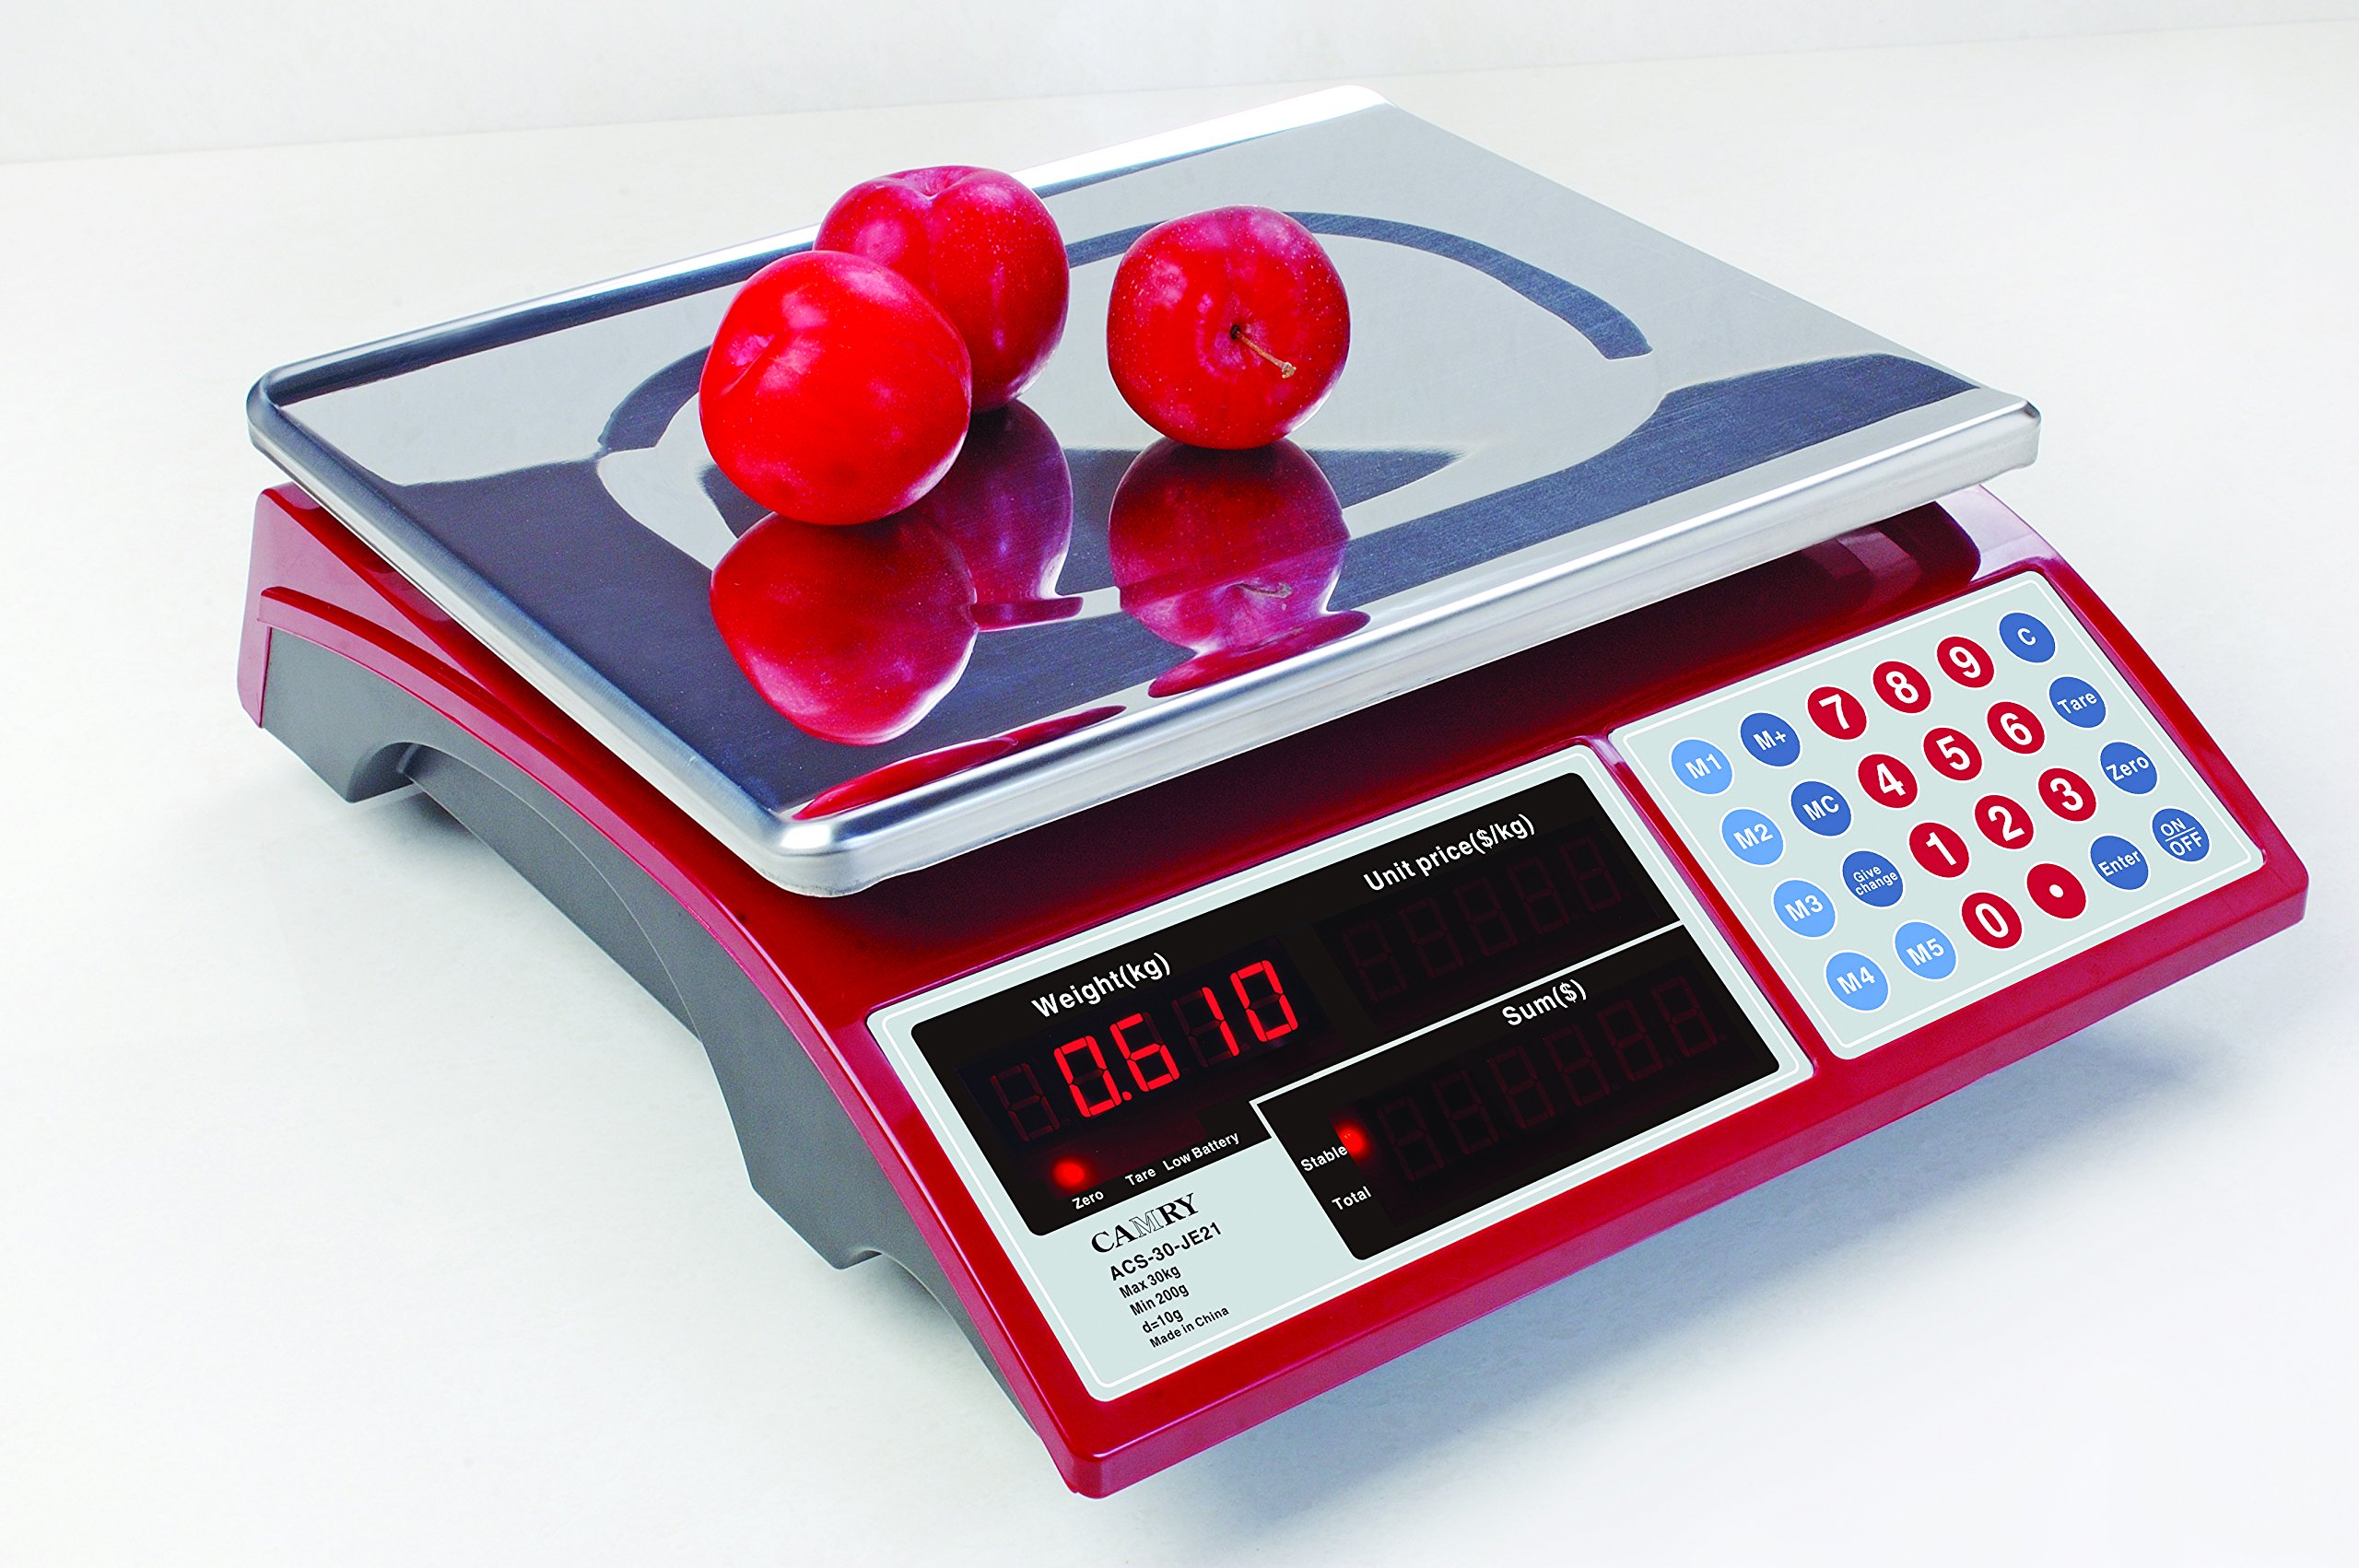 Camry Digital Commercial Price Scale 66lb/30kg for Food Meat Fruit Produce with Dual Bright Red LED Display 15 Inches Platform Rechargeable Battery Included Not For Trade